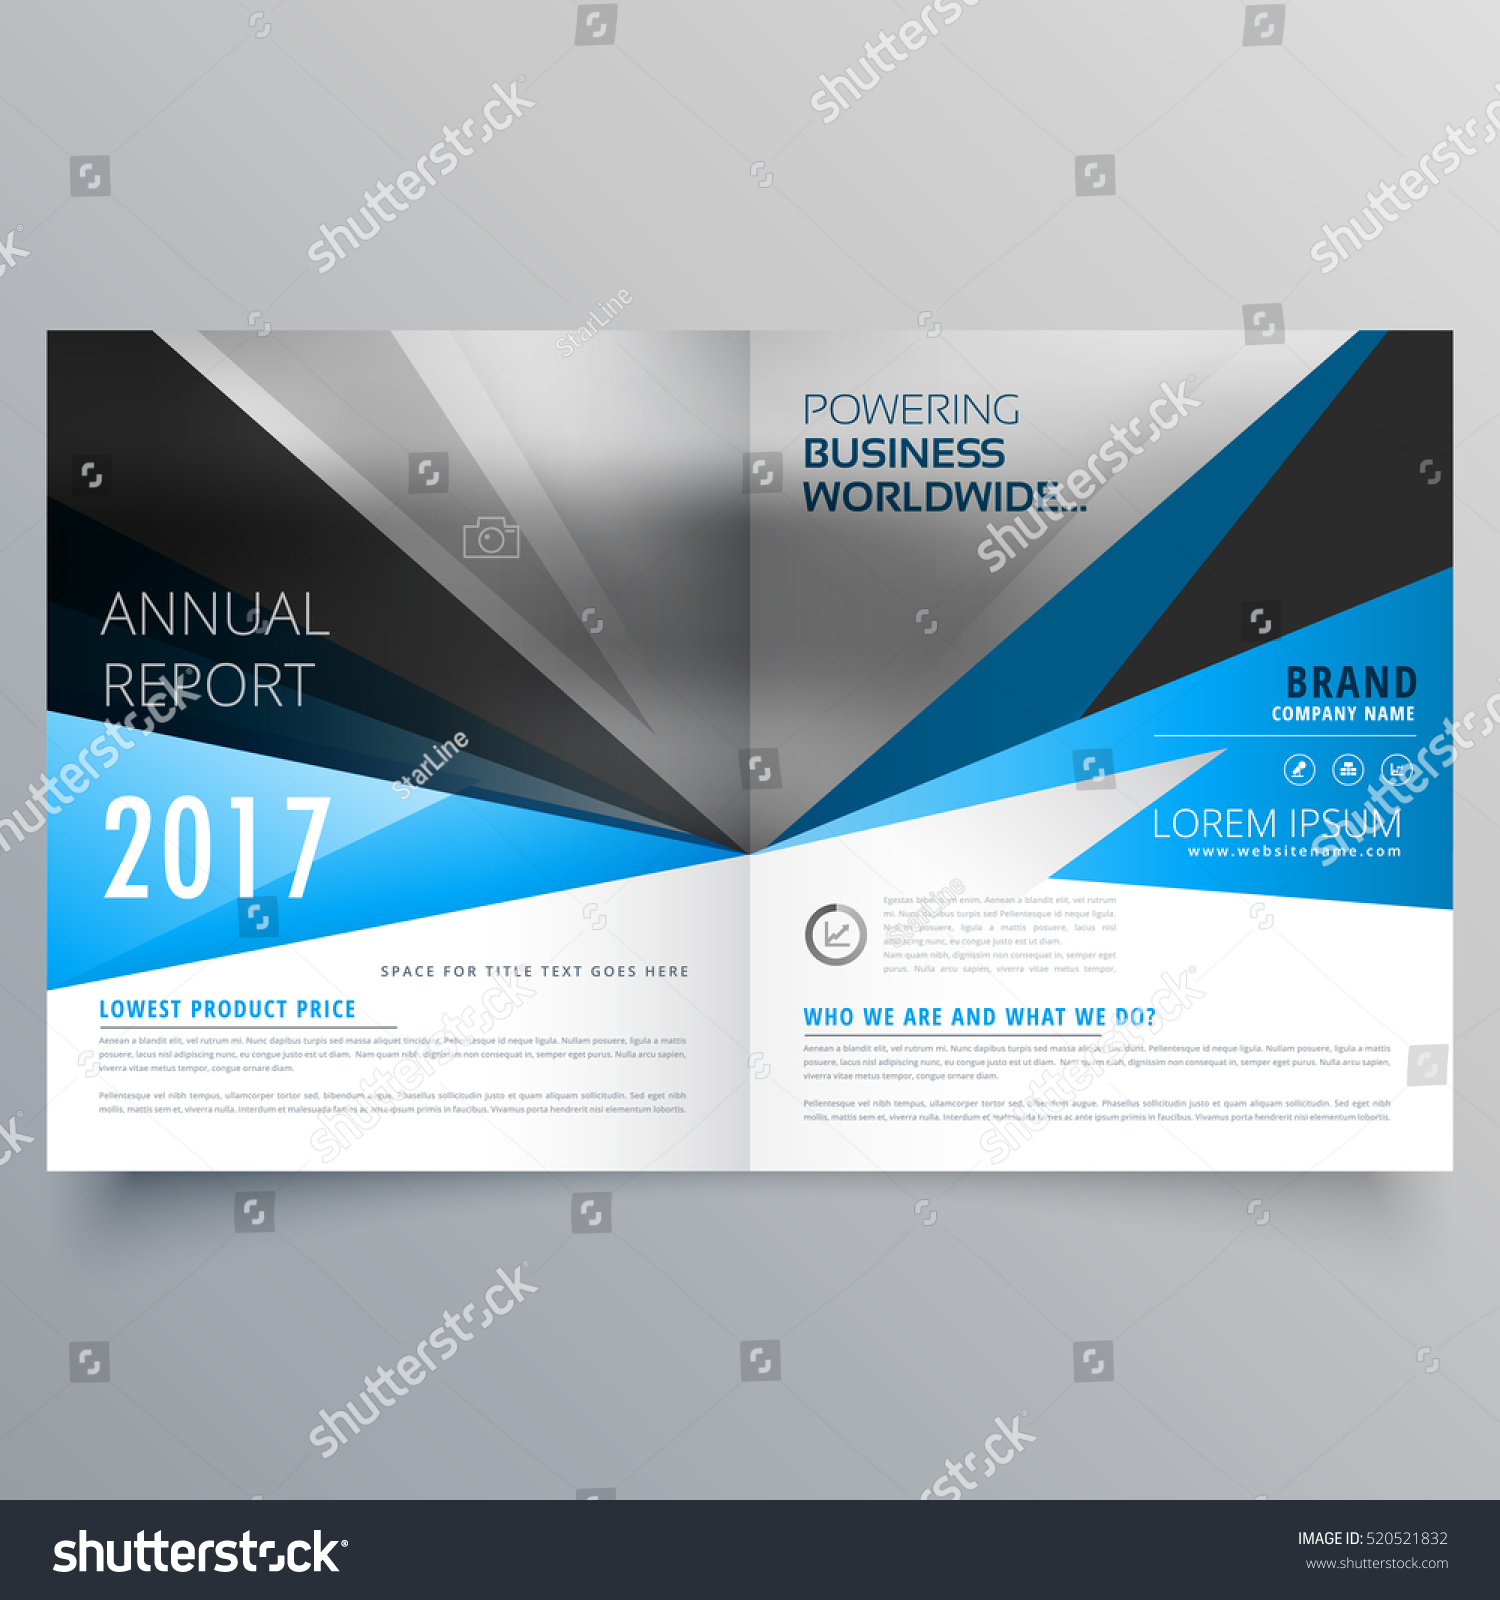 booklet magazine cover page creative template design 520521832 booklet magazine cover page creative template design